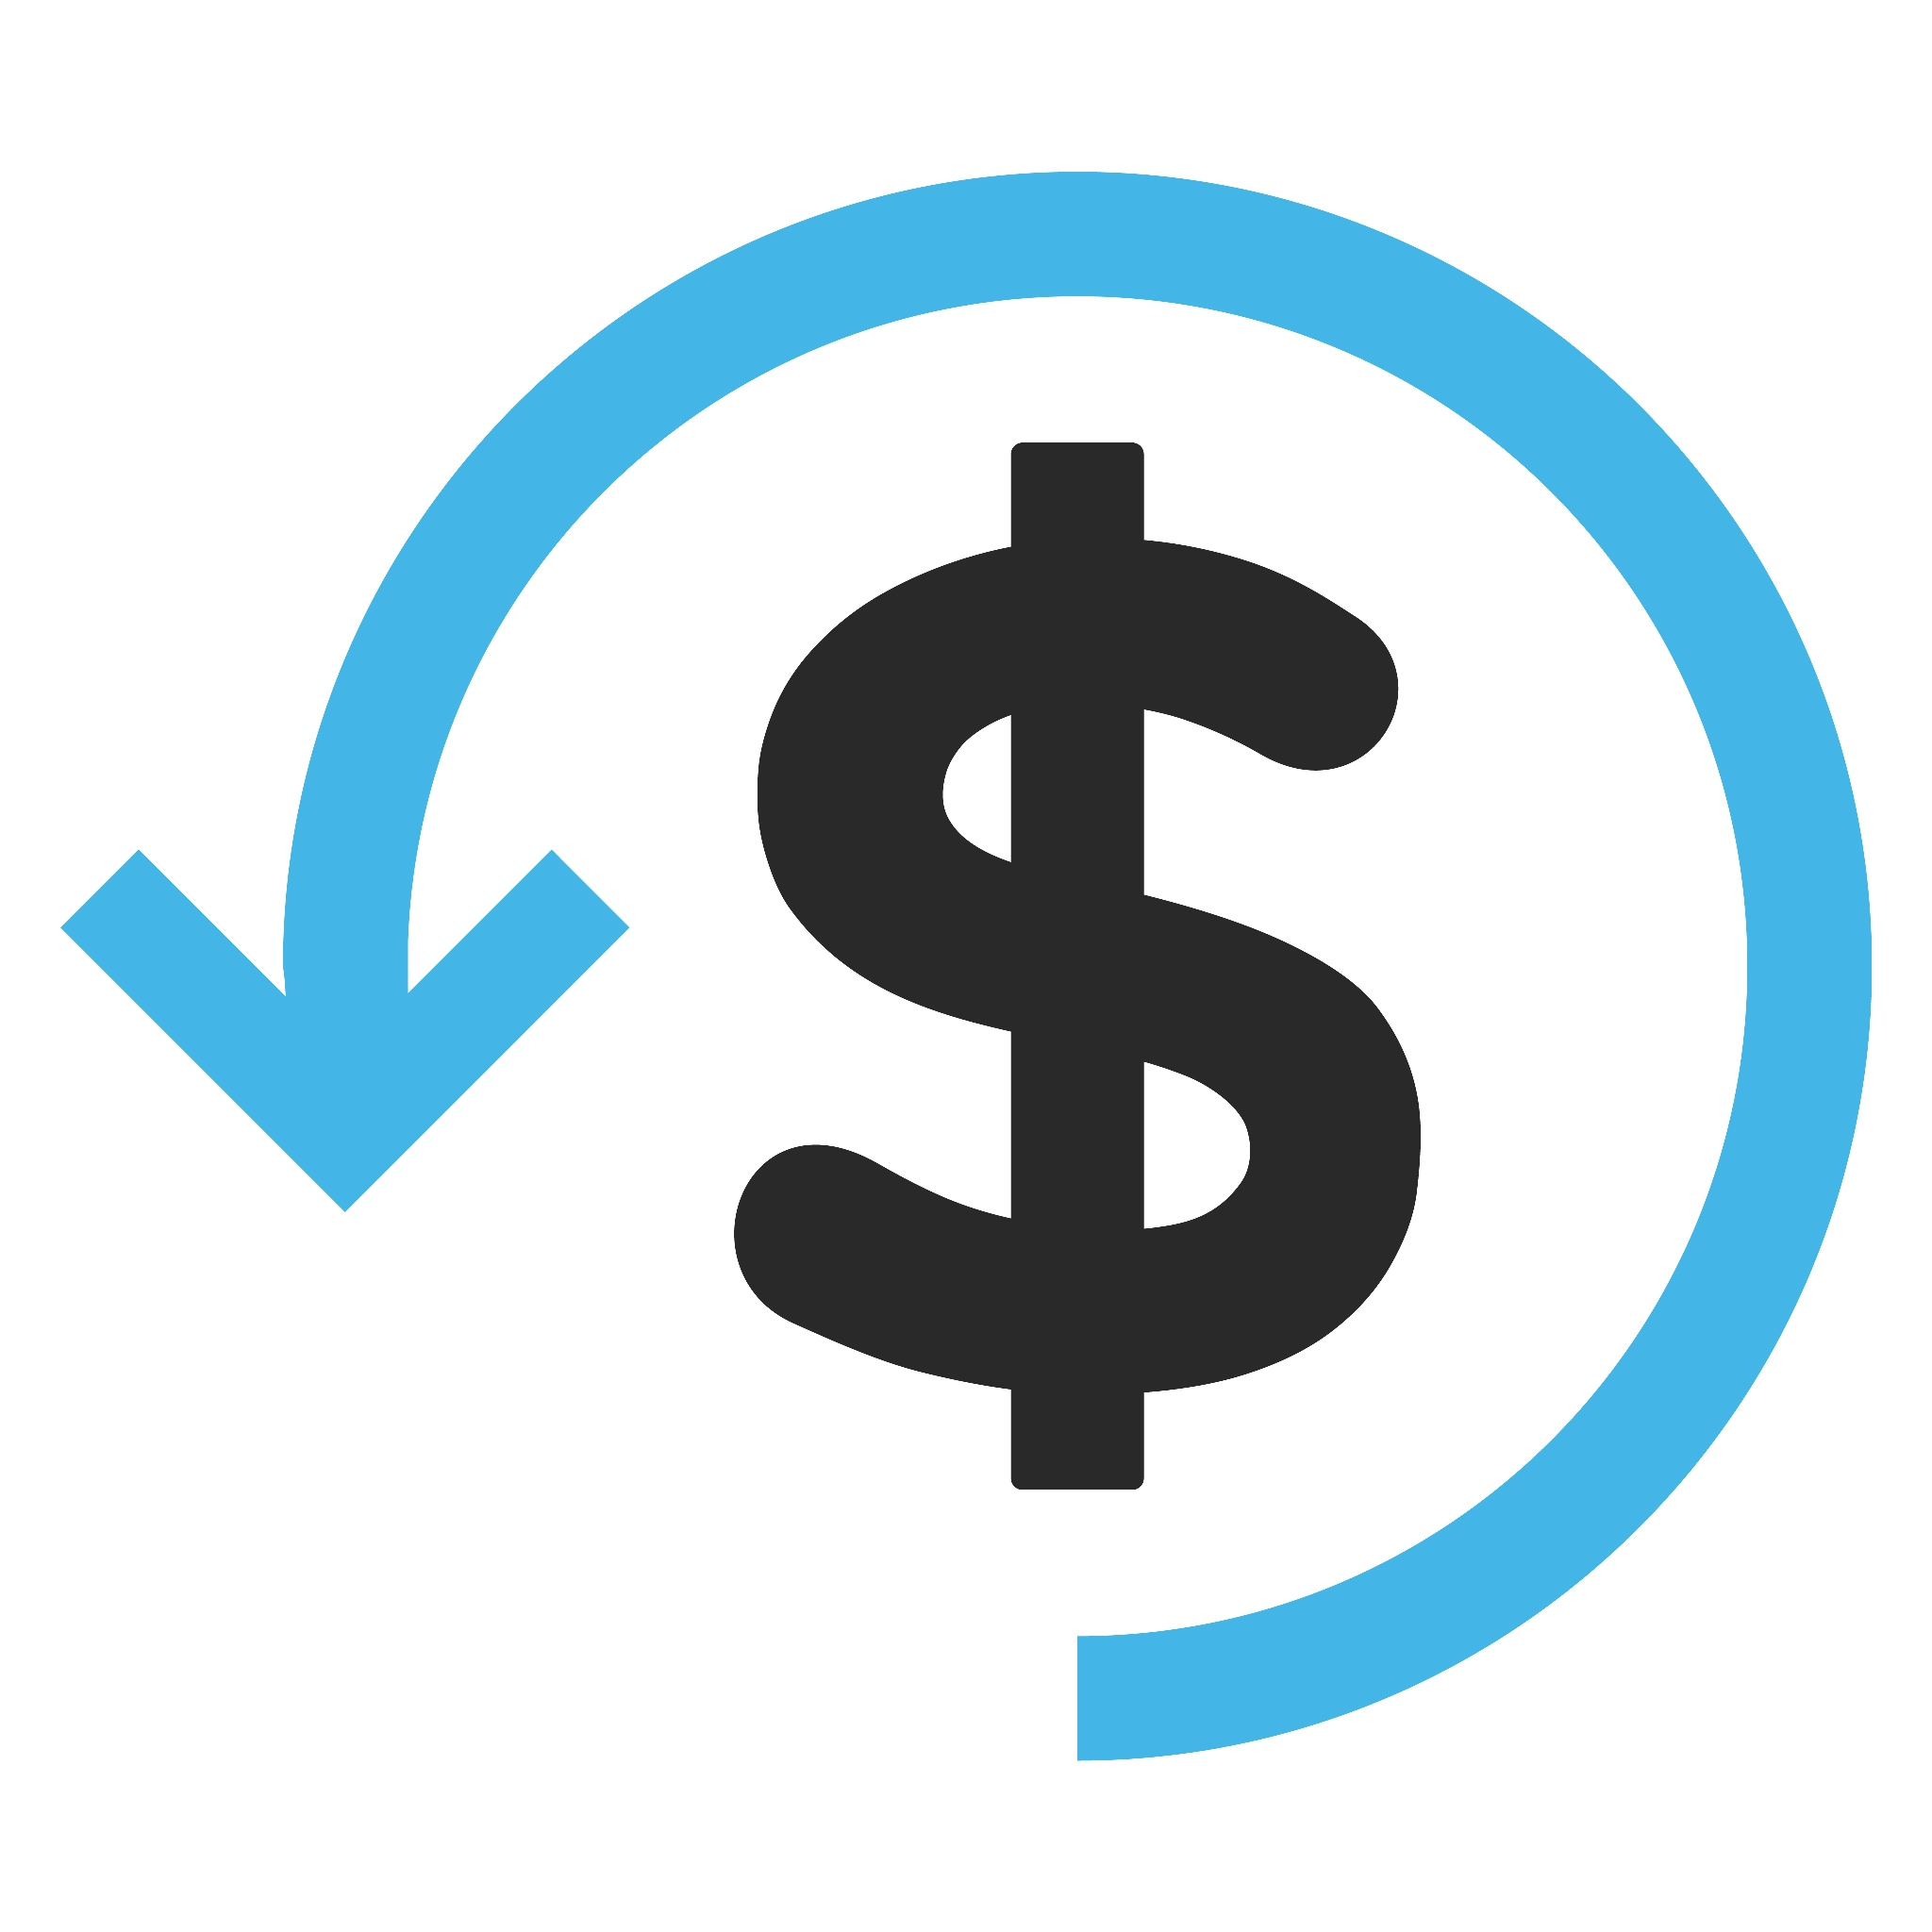 Chargeback Vector Image.png